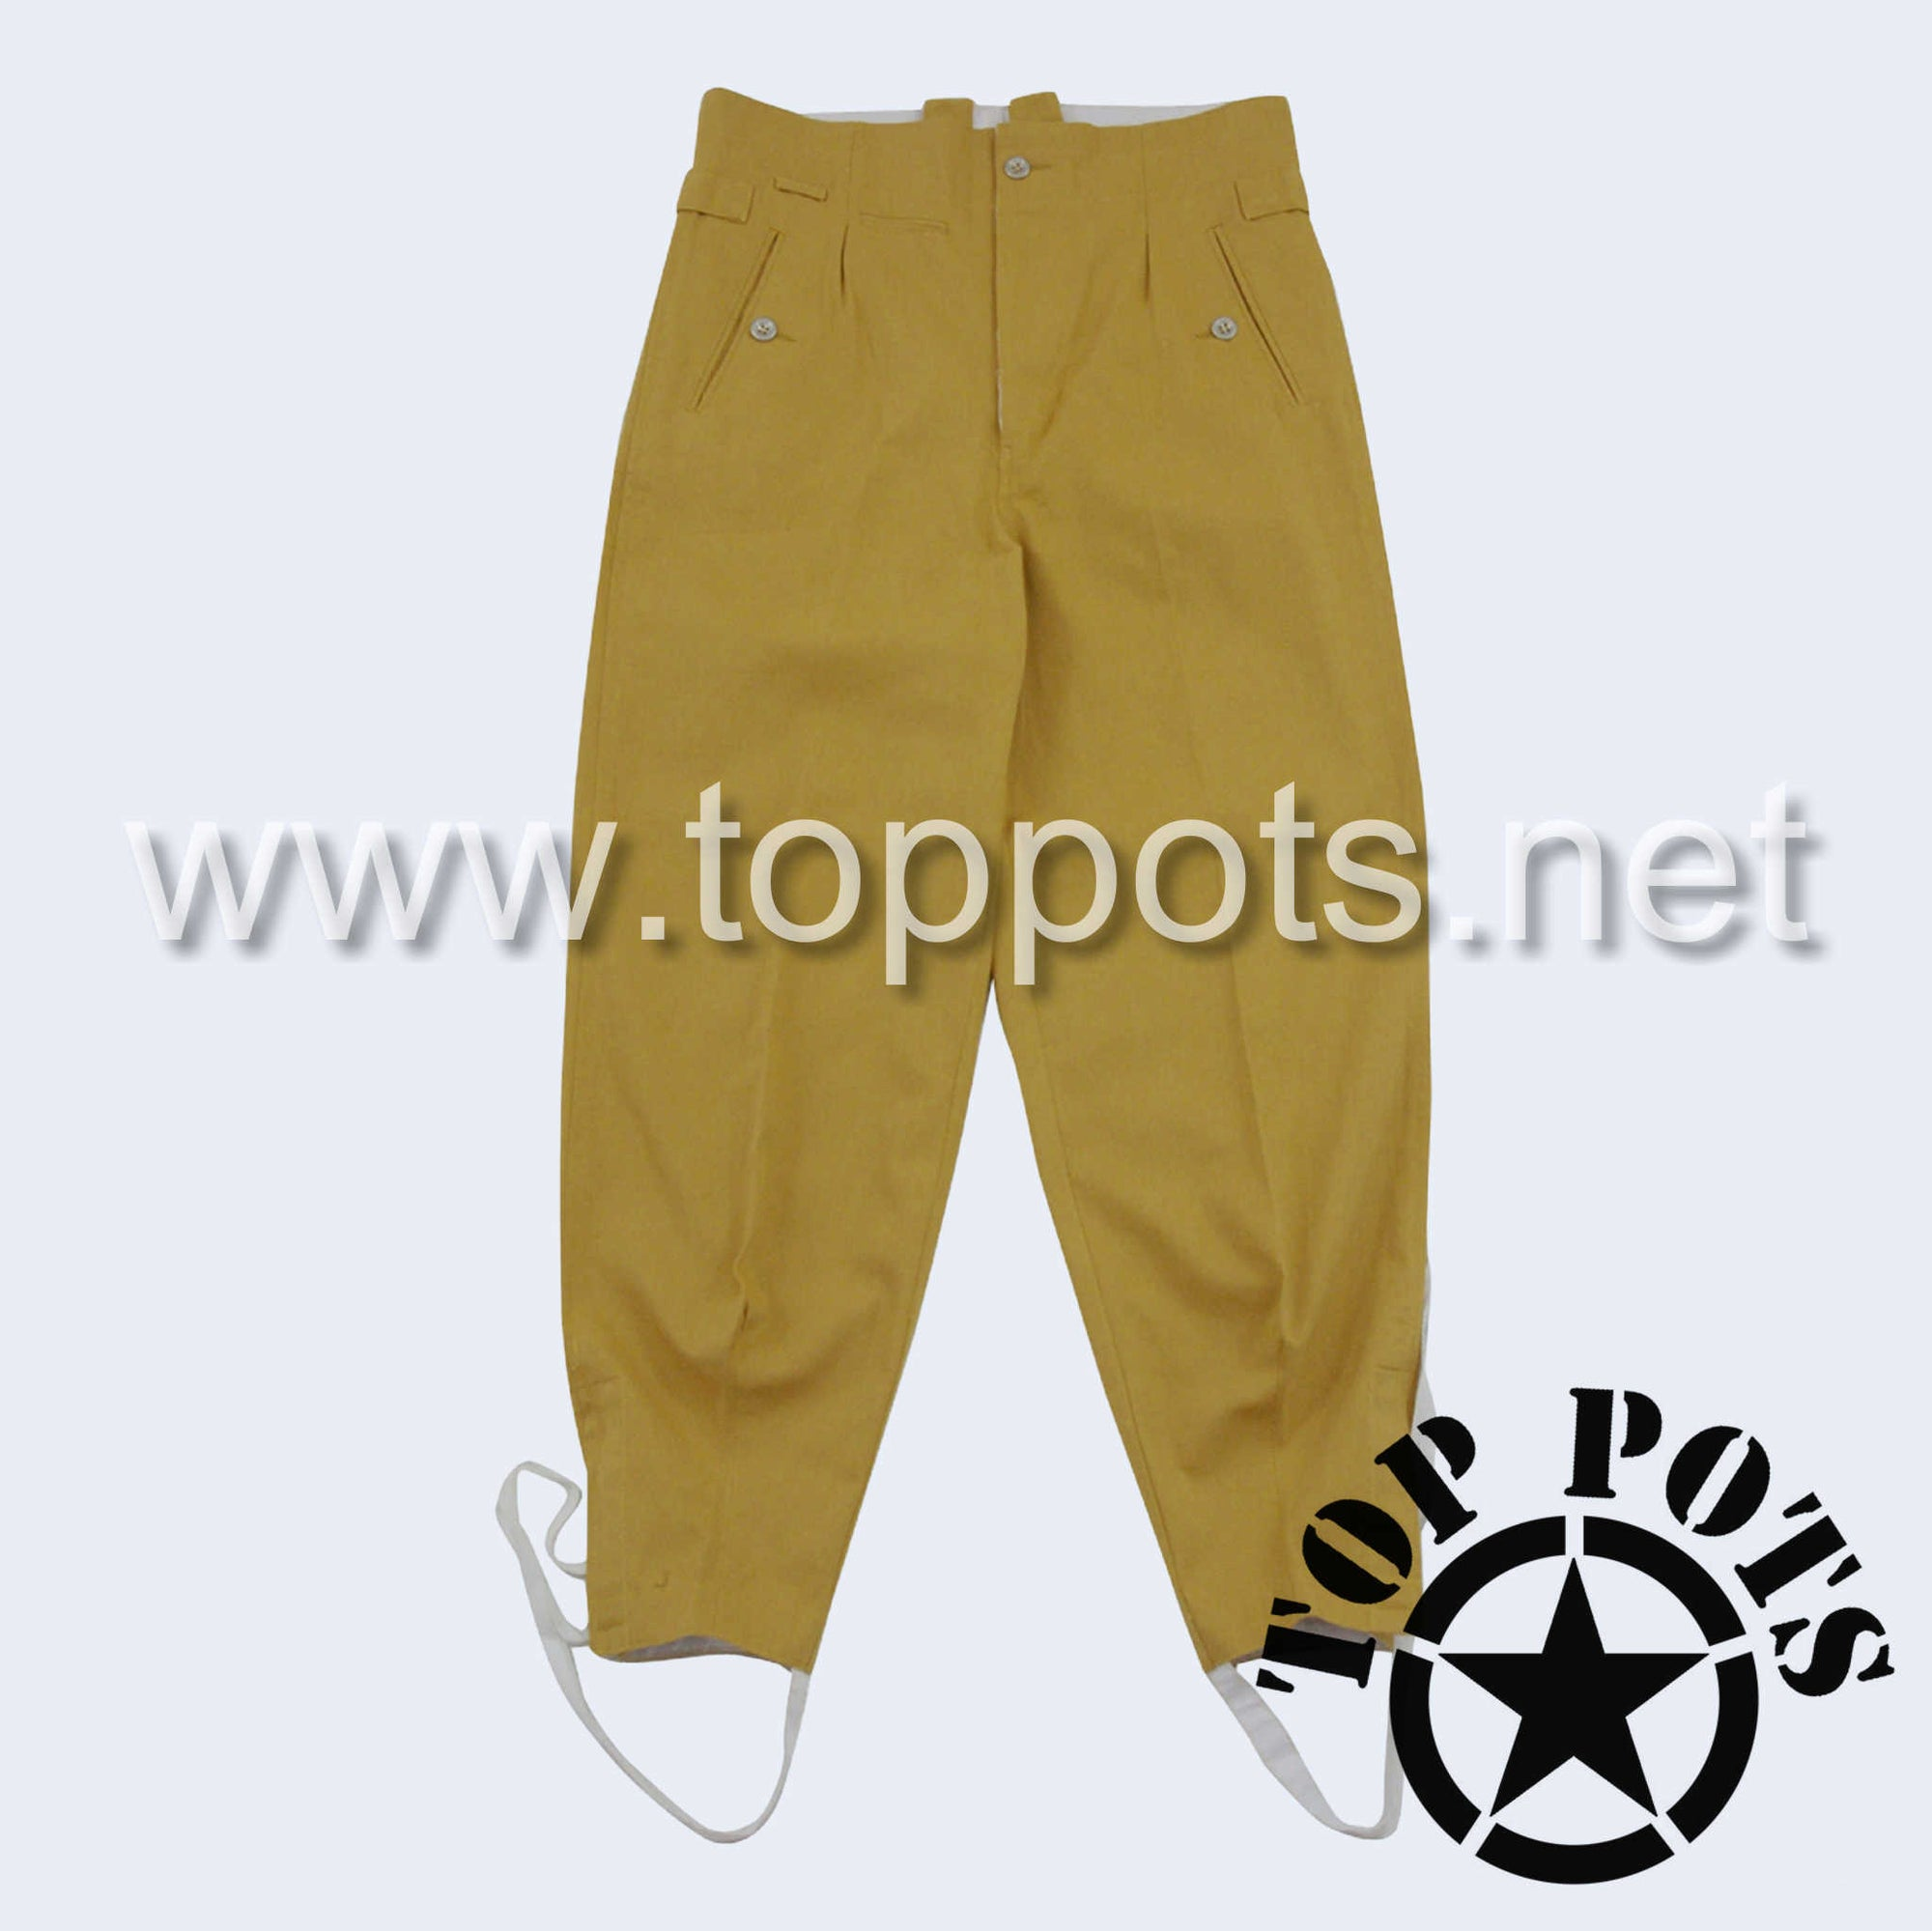 WWII German Army M1943 DAK Afrika Korps Tropical Uniform Sahariana Field Pants Sand Khaki - Waffen SS Enlisted Trousers